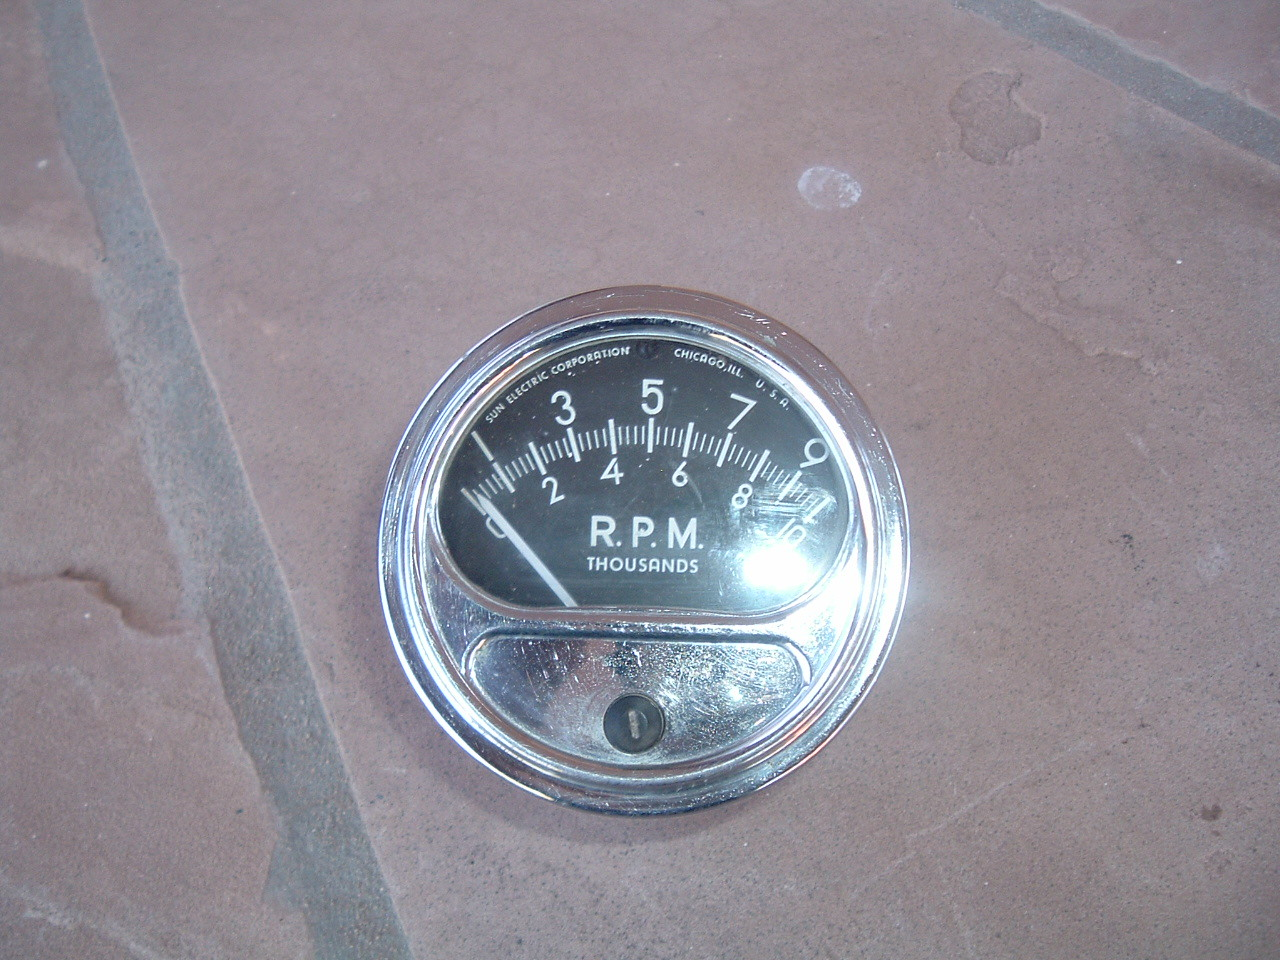 1960 61 62 63 64 65 era sun tachometer 10 grand FZ-108 N good used (z fz108n)